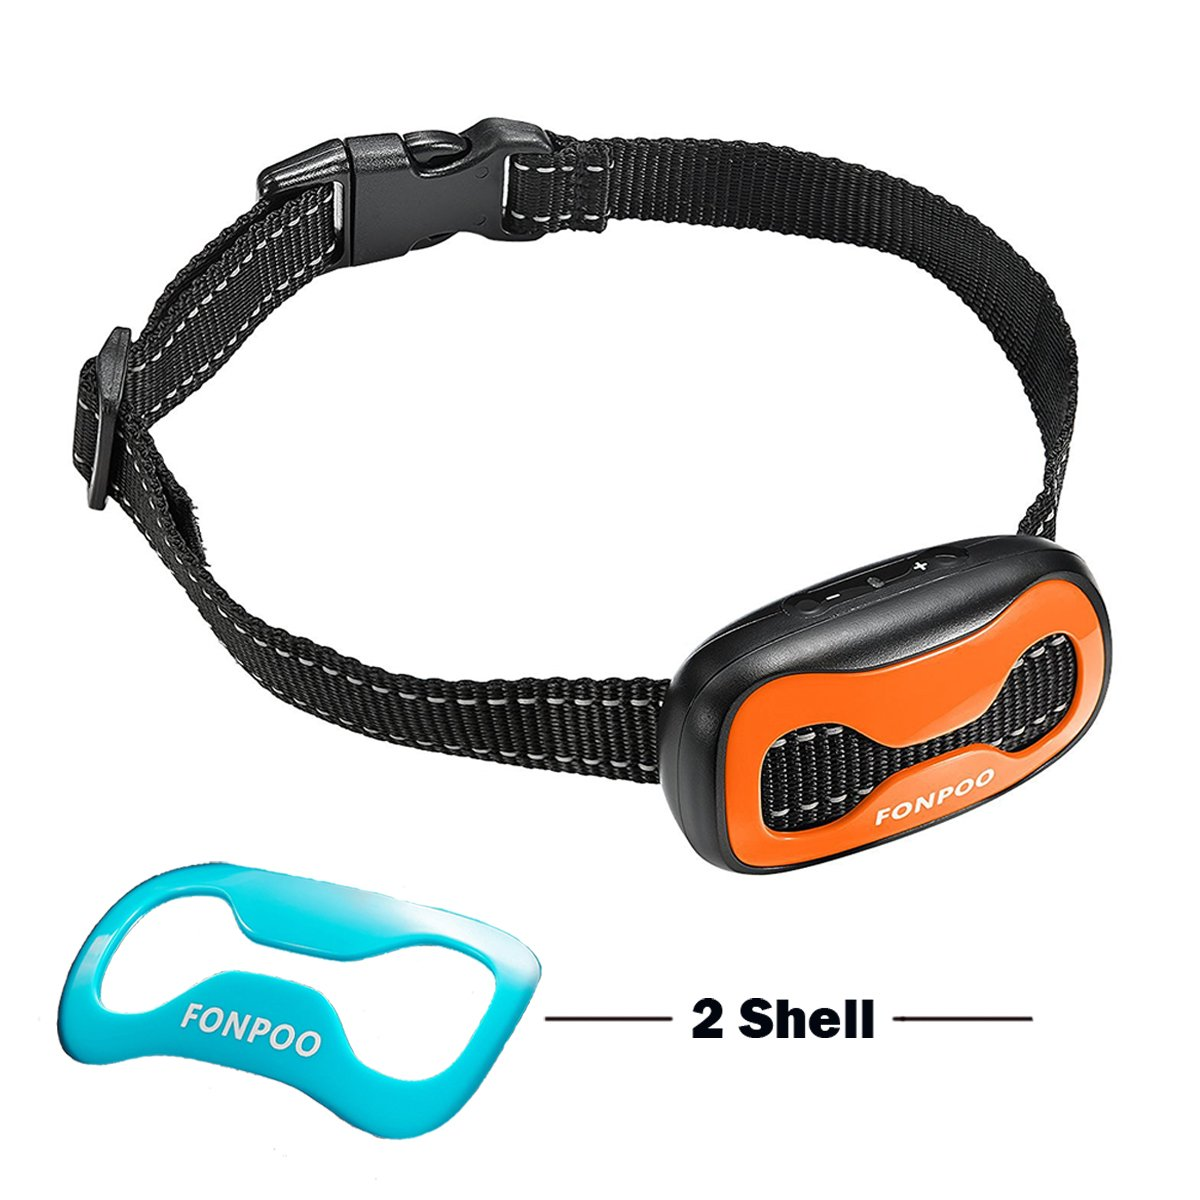 FONPOO FP681S Dog No Bark Collar for Bark Control with Harmless Warning Sound